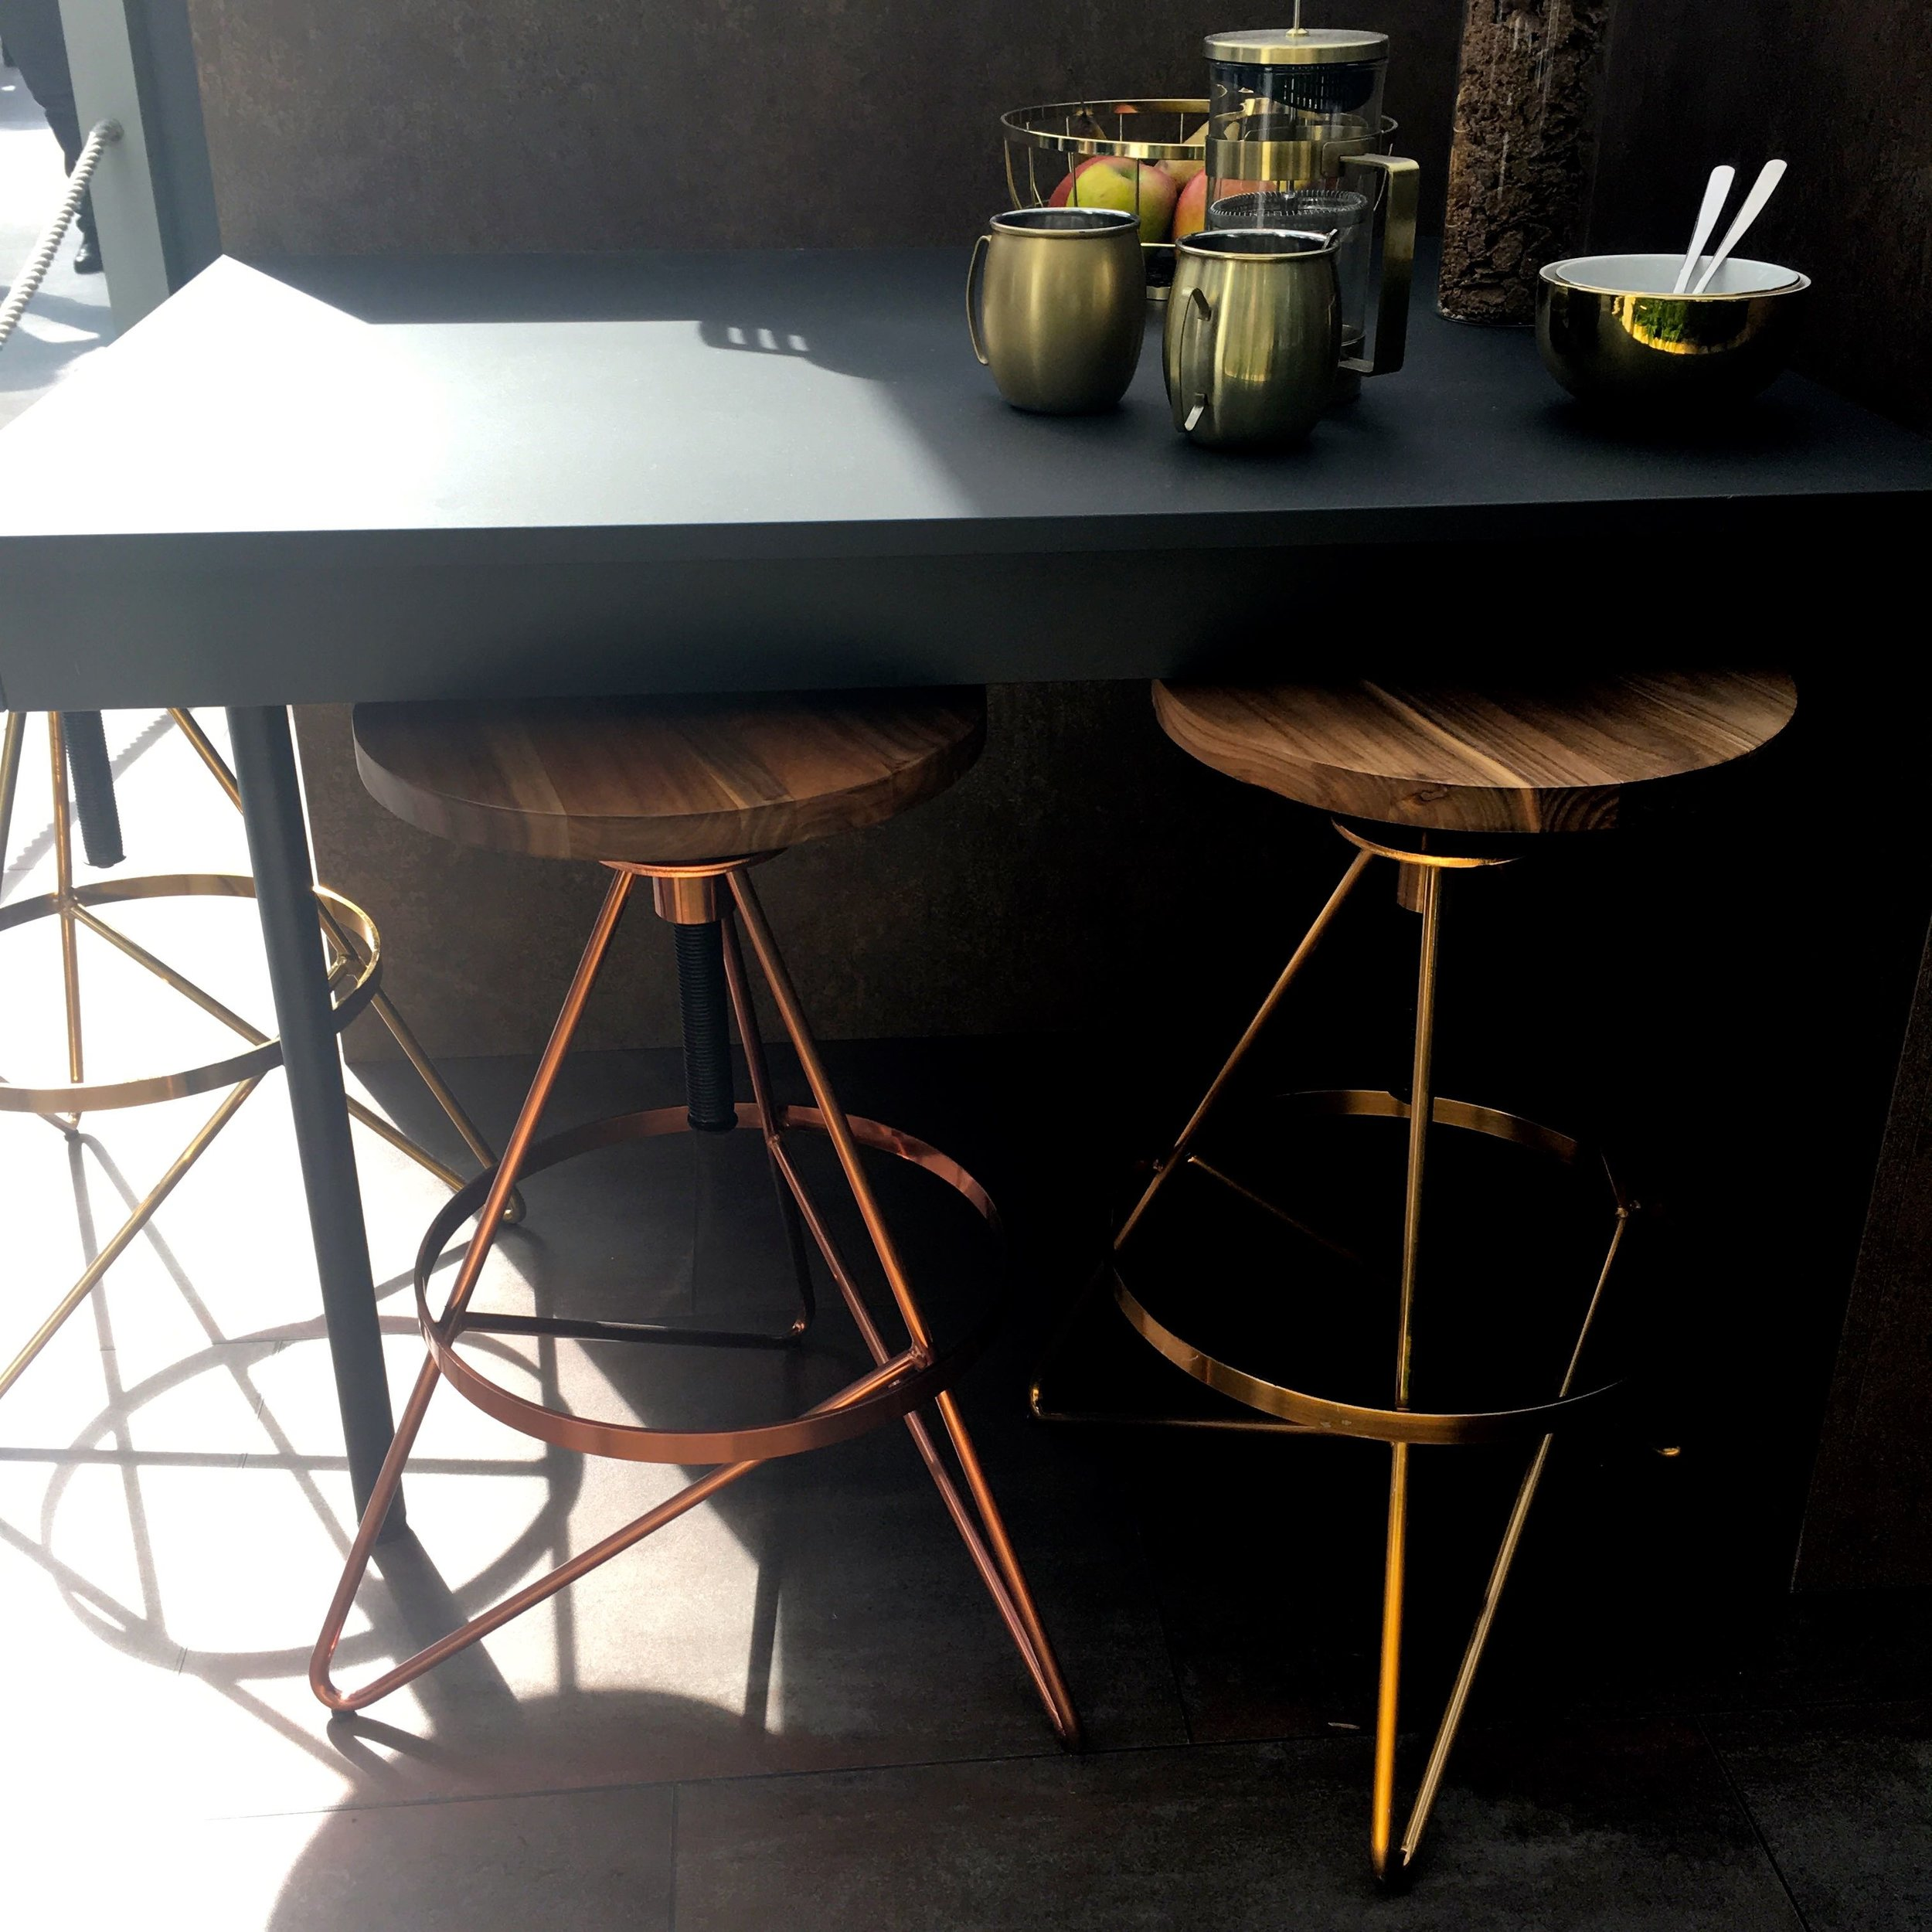 Copper and wood stools nestled under the breakfast bar